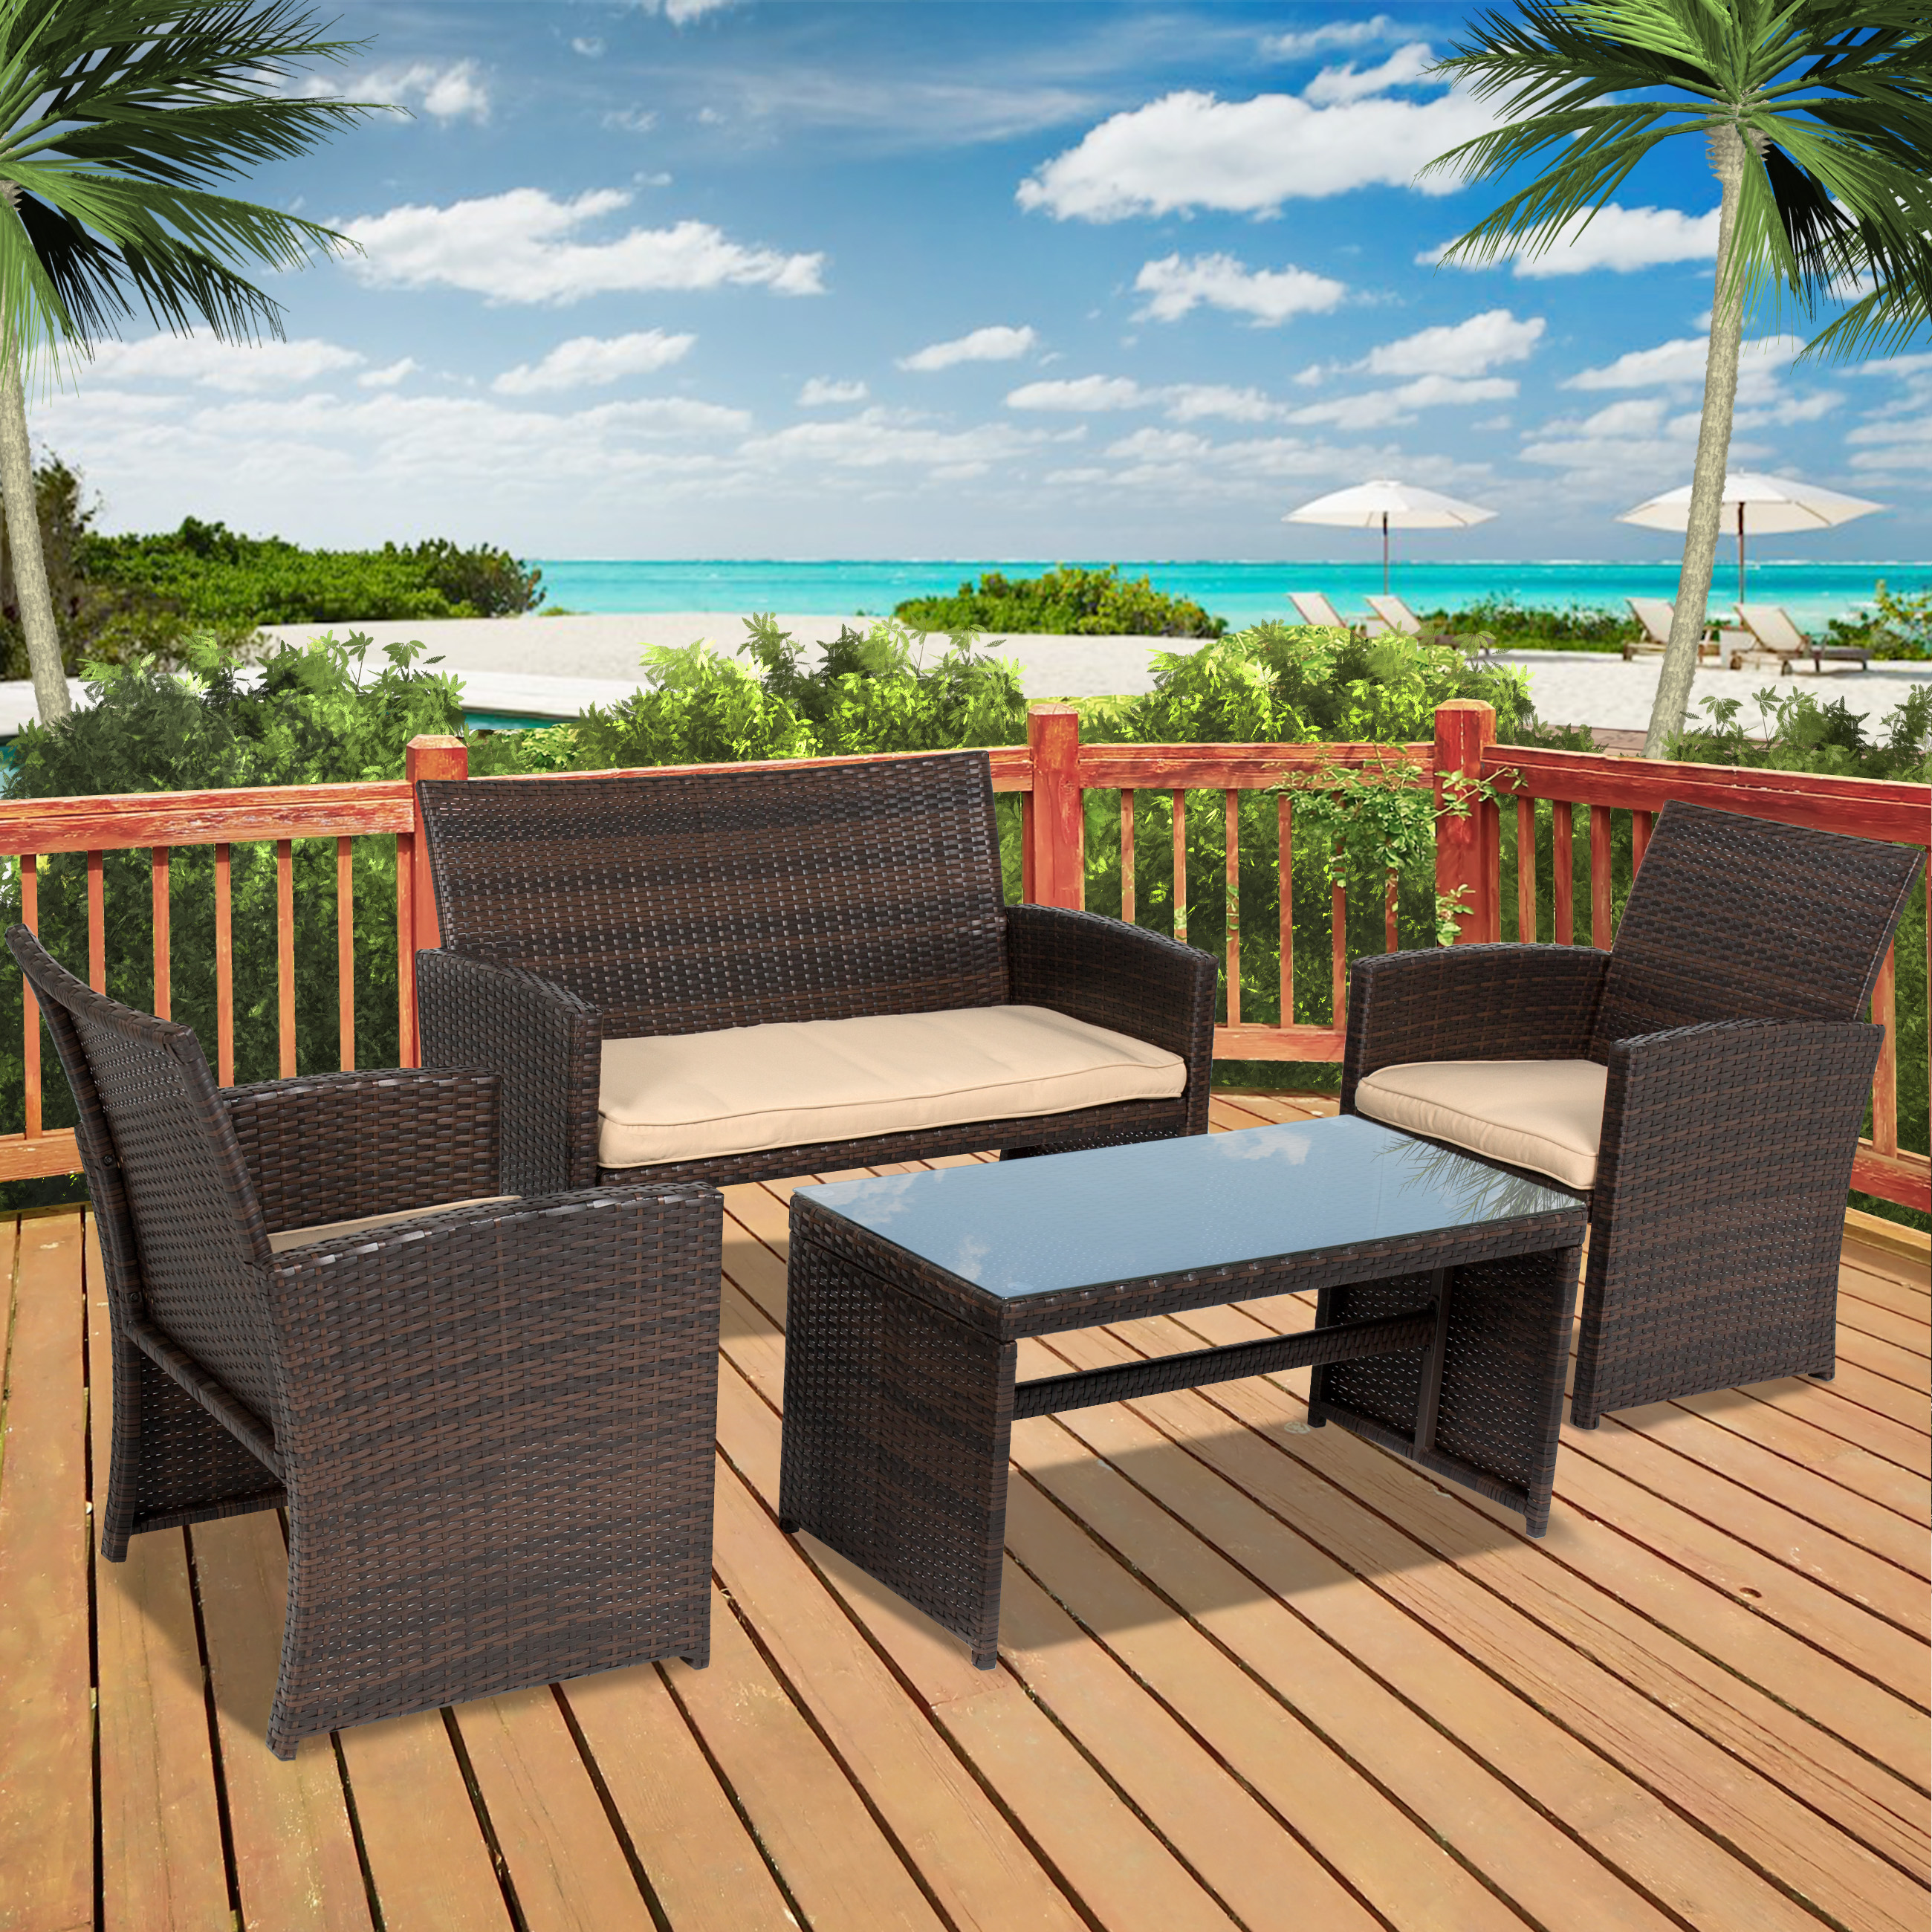 Best Choice Products 4pc Wicker Outdoor Patio Furniture Set Cushioned Seats